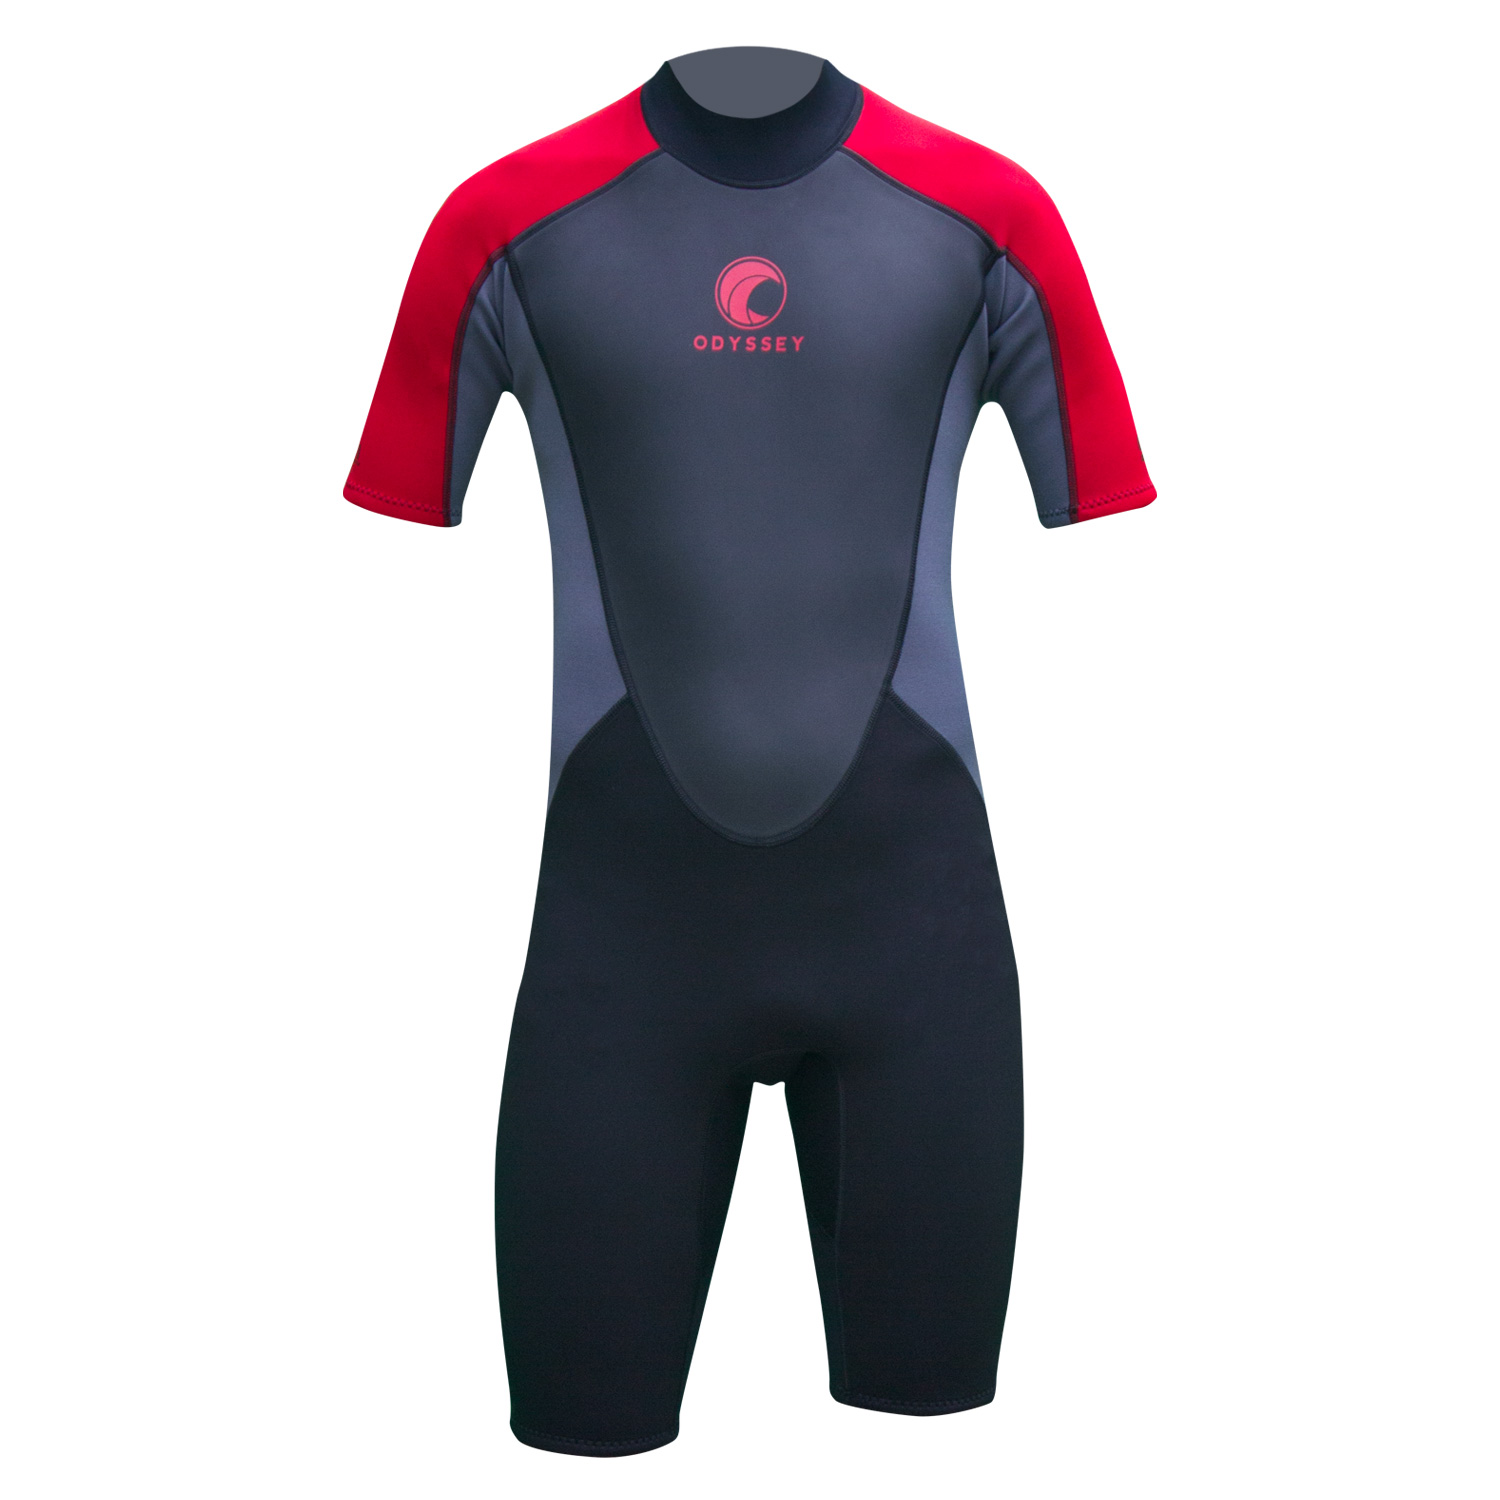 Odyssey-Core-3-2mm-Mens-Shorty-Wetsuit-Surf-Swim-Kayak-Shortie-Wet-Suit-S-XXL thumbnail 15